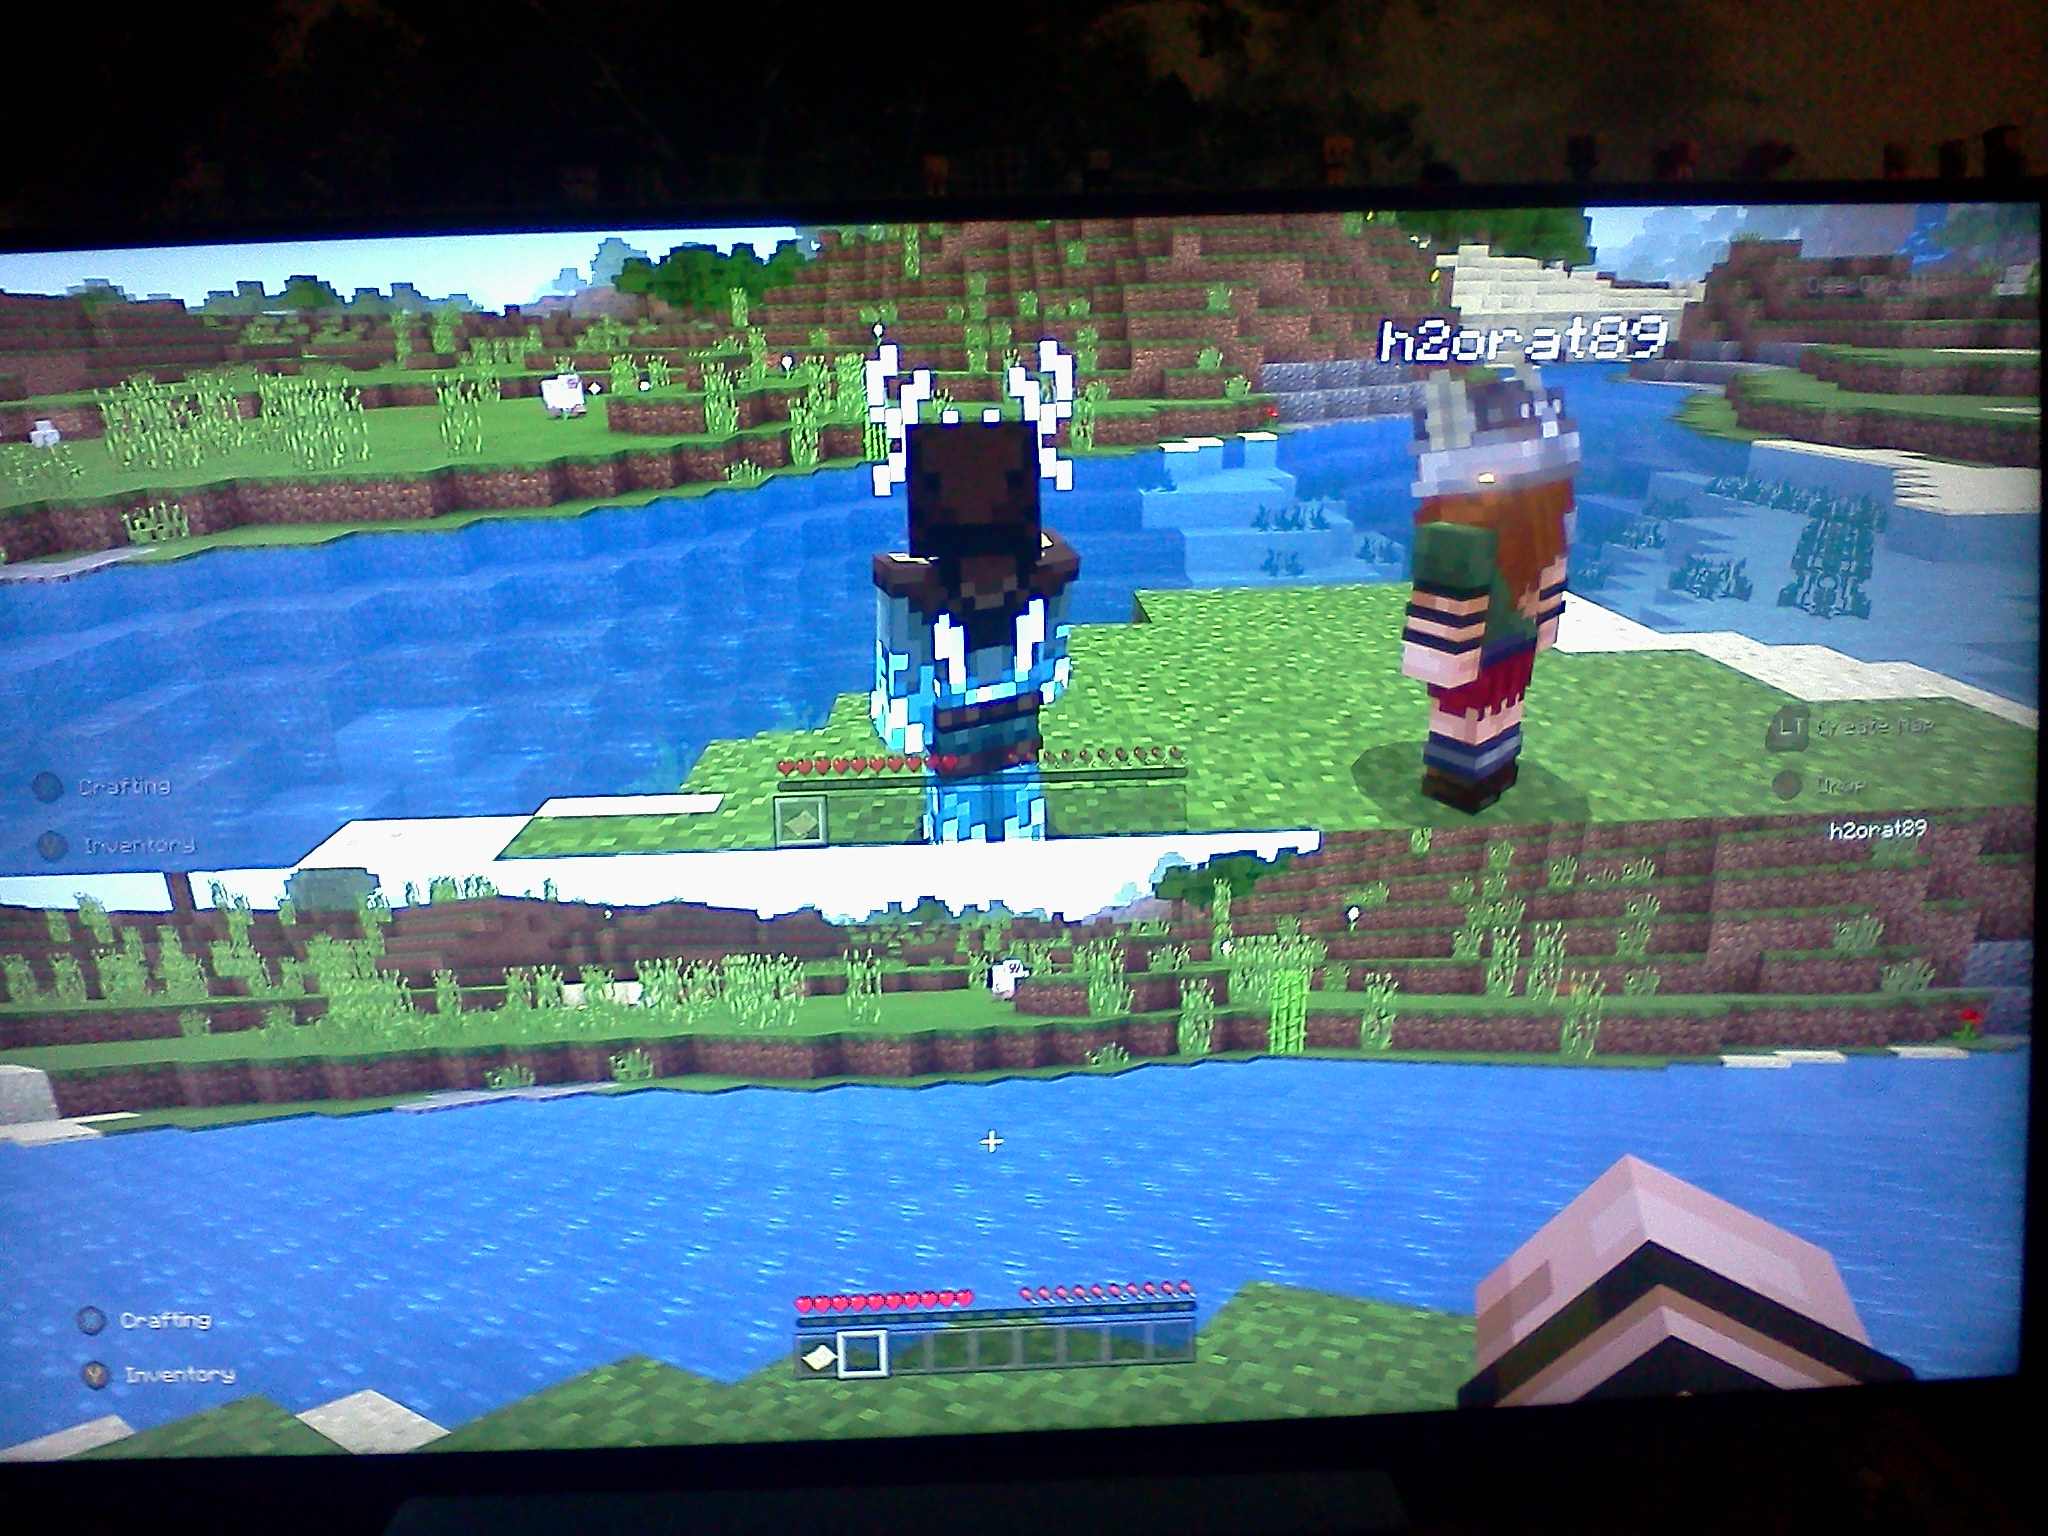 MCPE-39539] In splitscreen multiplayer mode on Consoles, only the